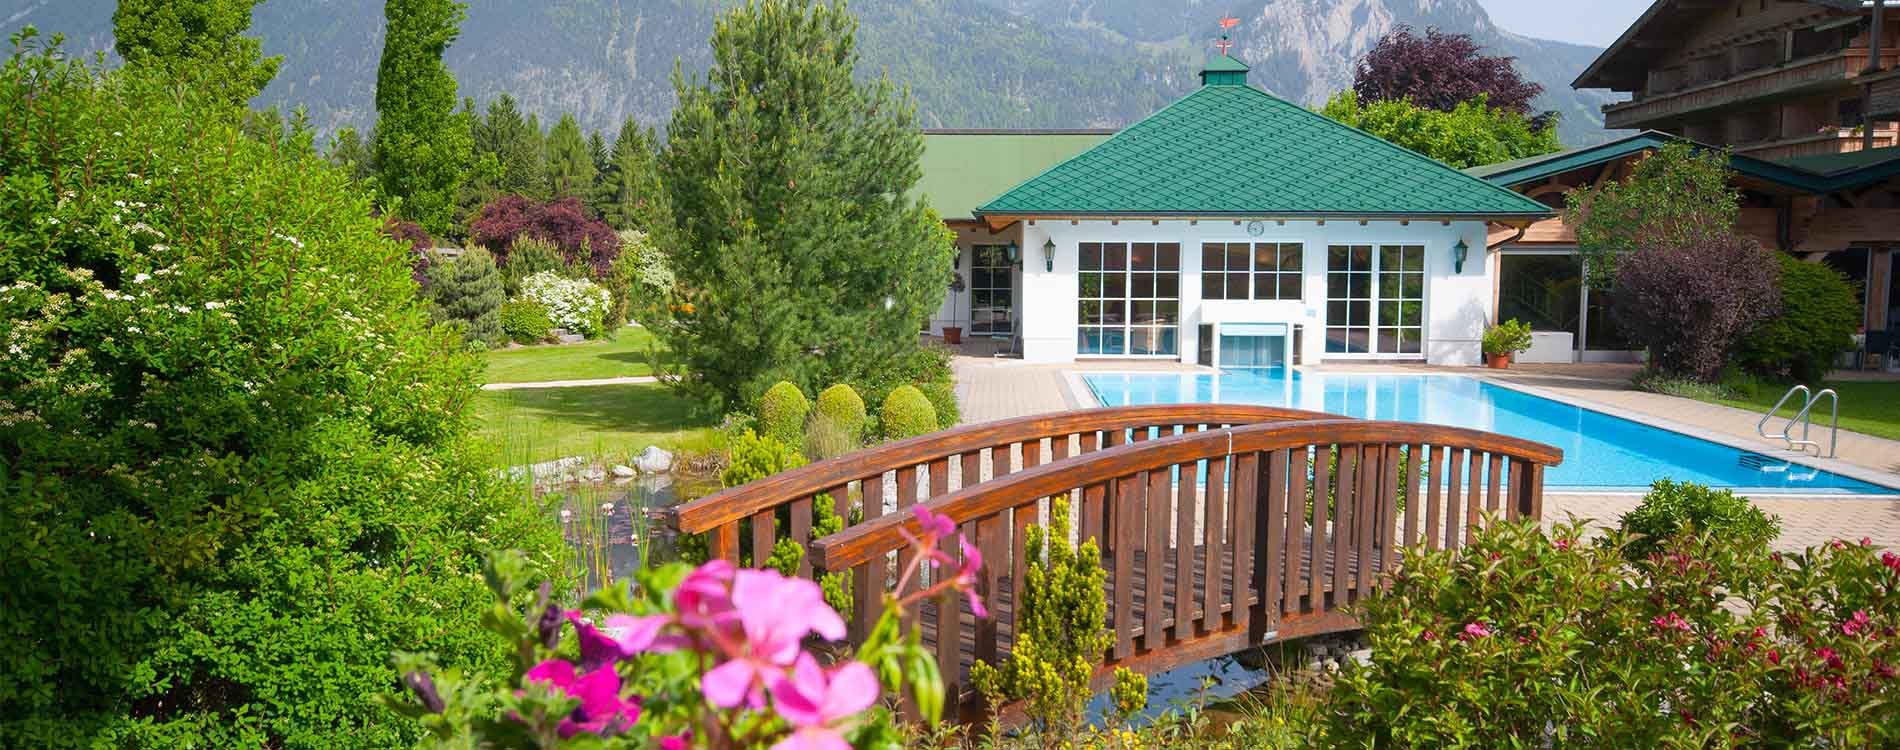 Pirchner Hof Reith Alpbach Valley Tyrol Holistic Hildegard von Bingen Naturopathy rejuvenation week Outsidepool Summer holidays